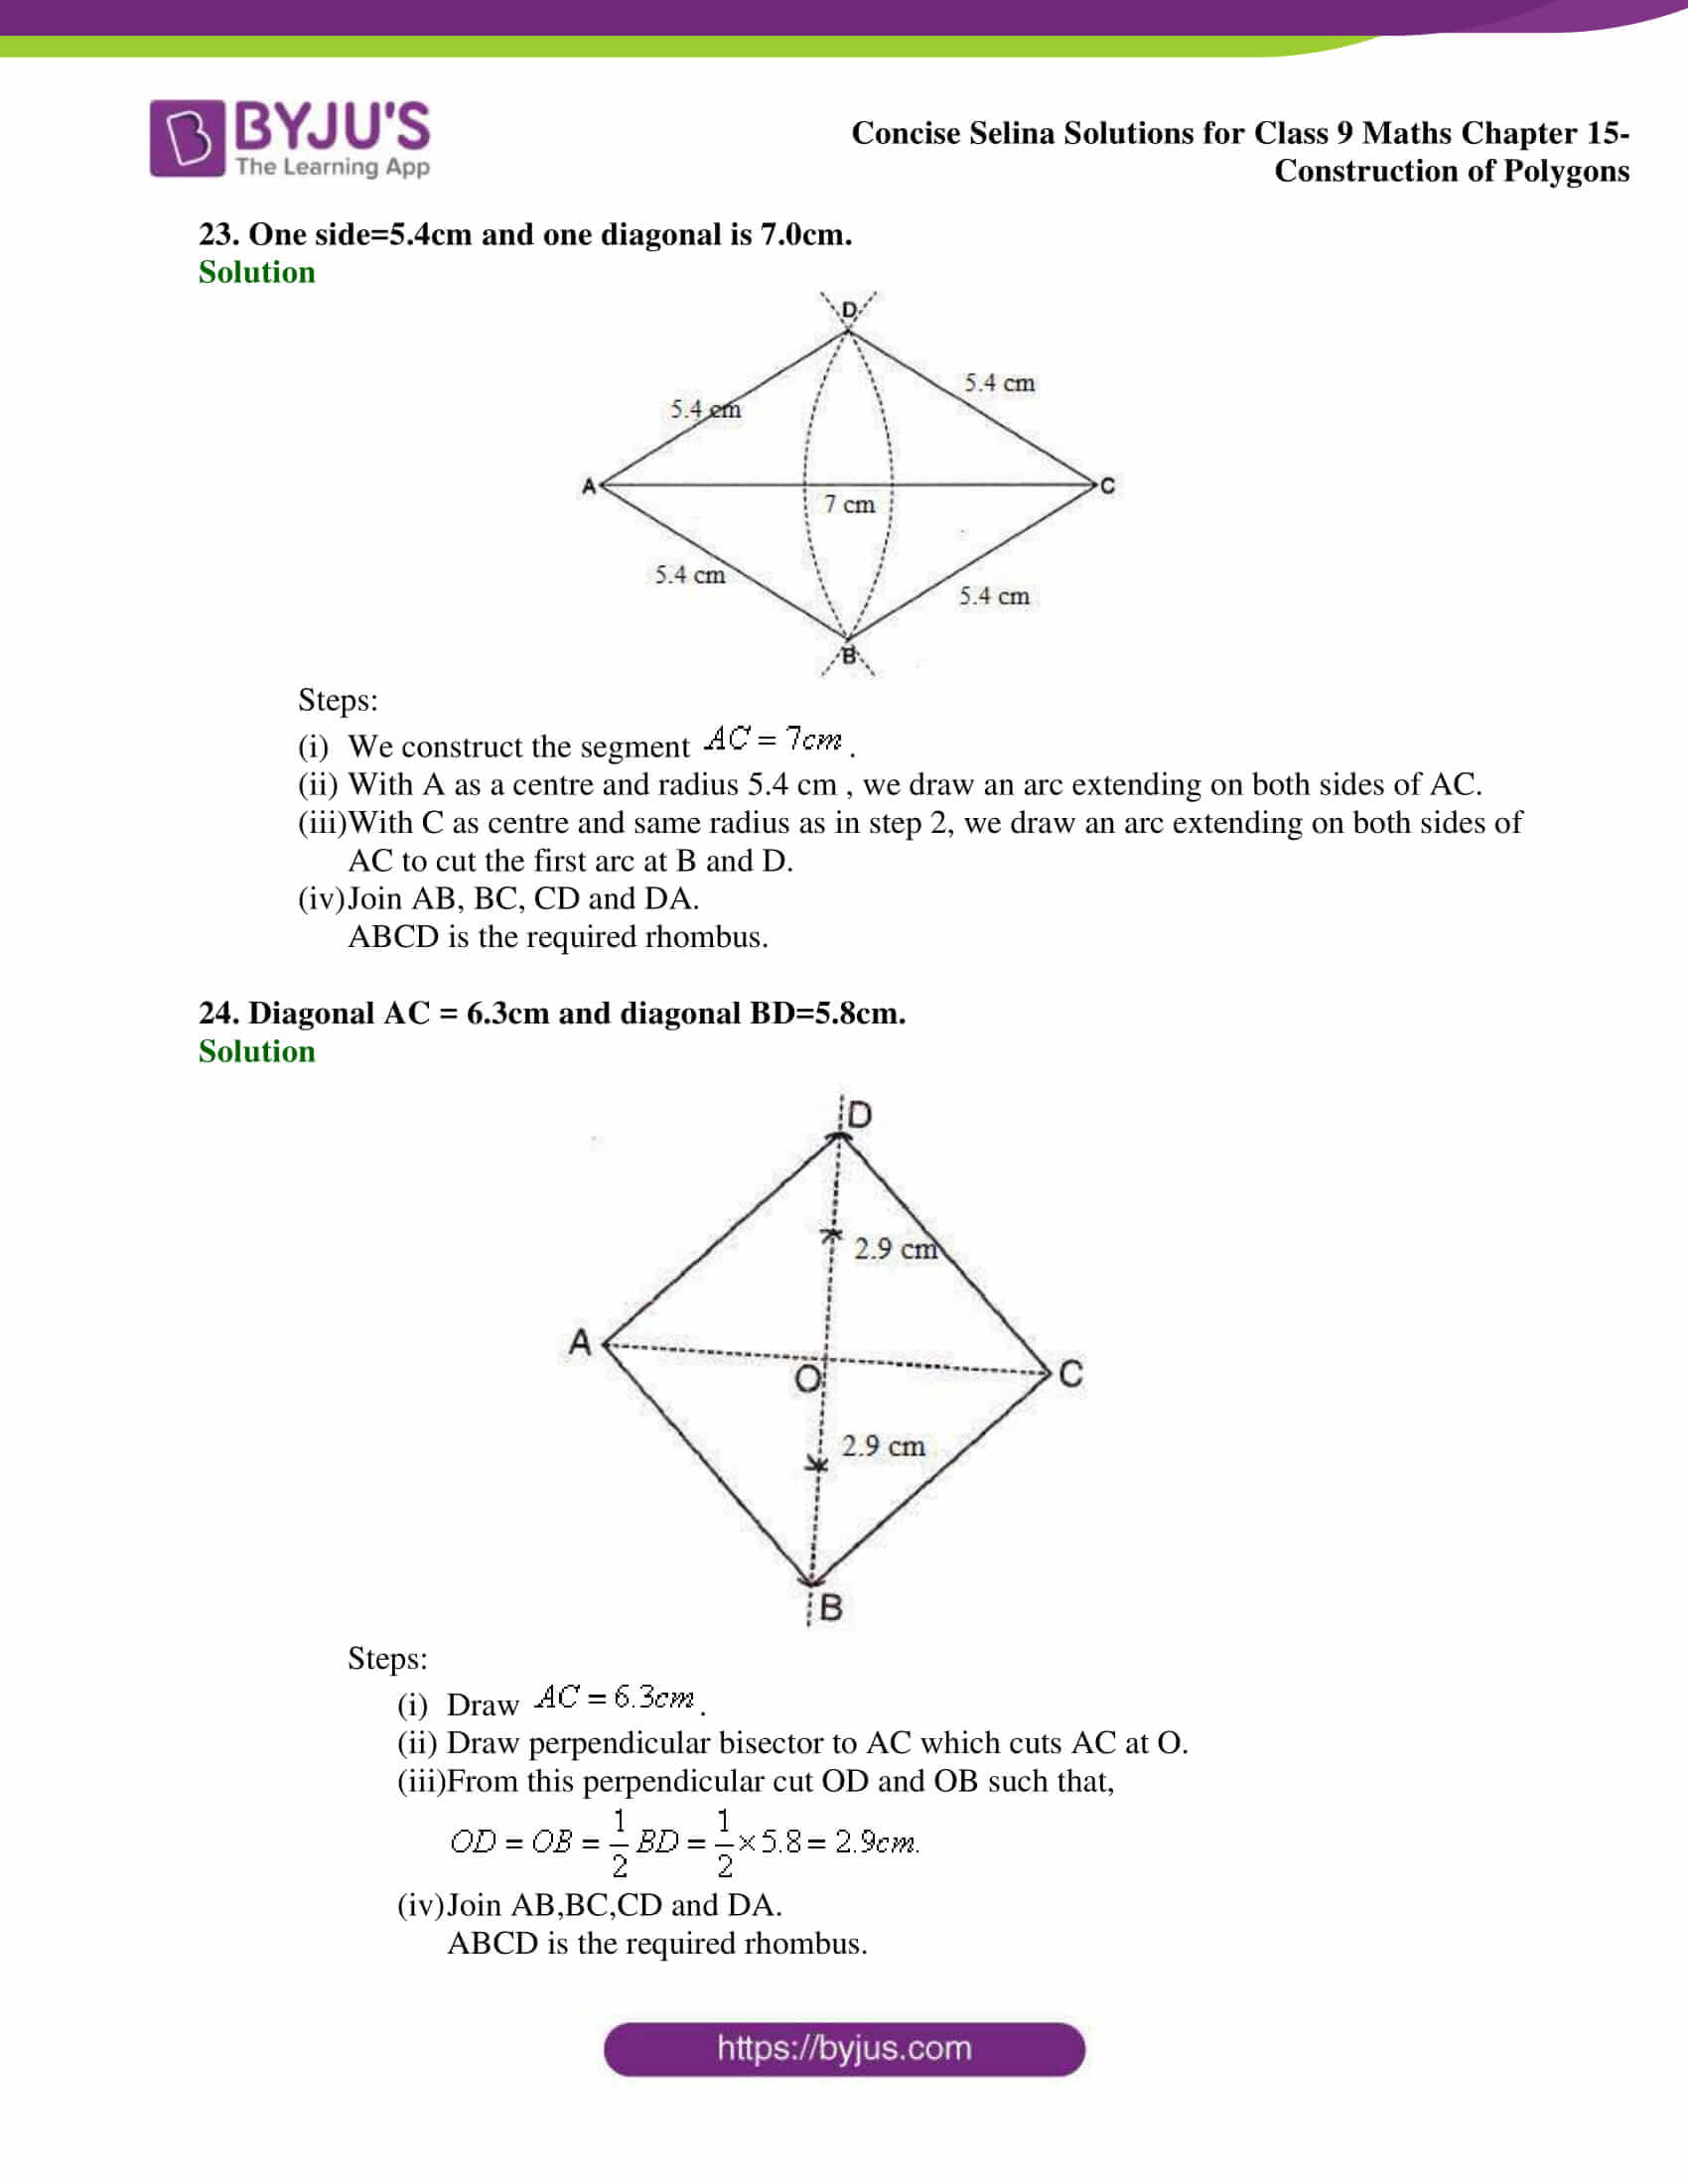 selina Solutions for Class 9 Maths Chapter 15 part 12